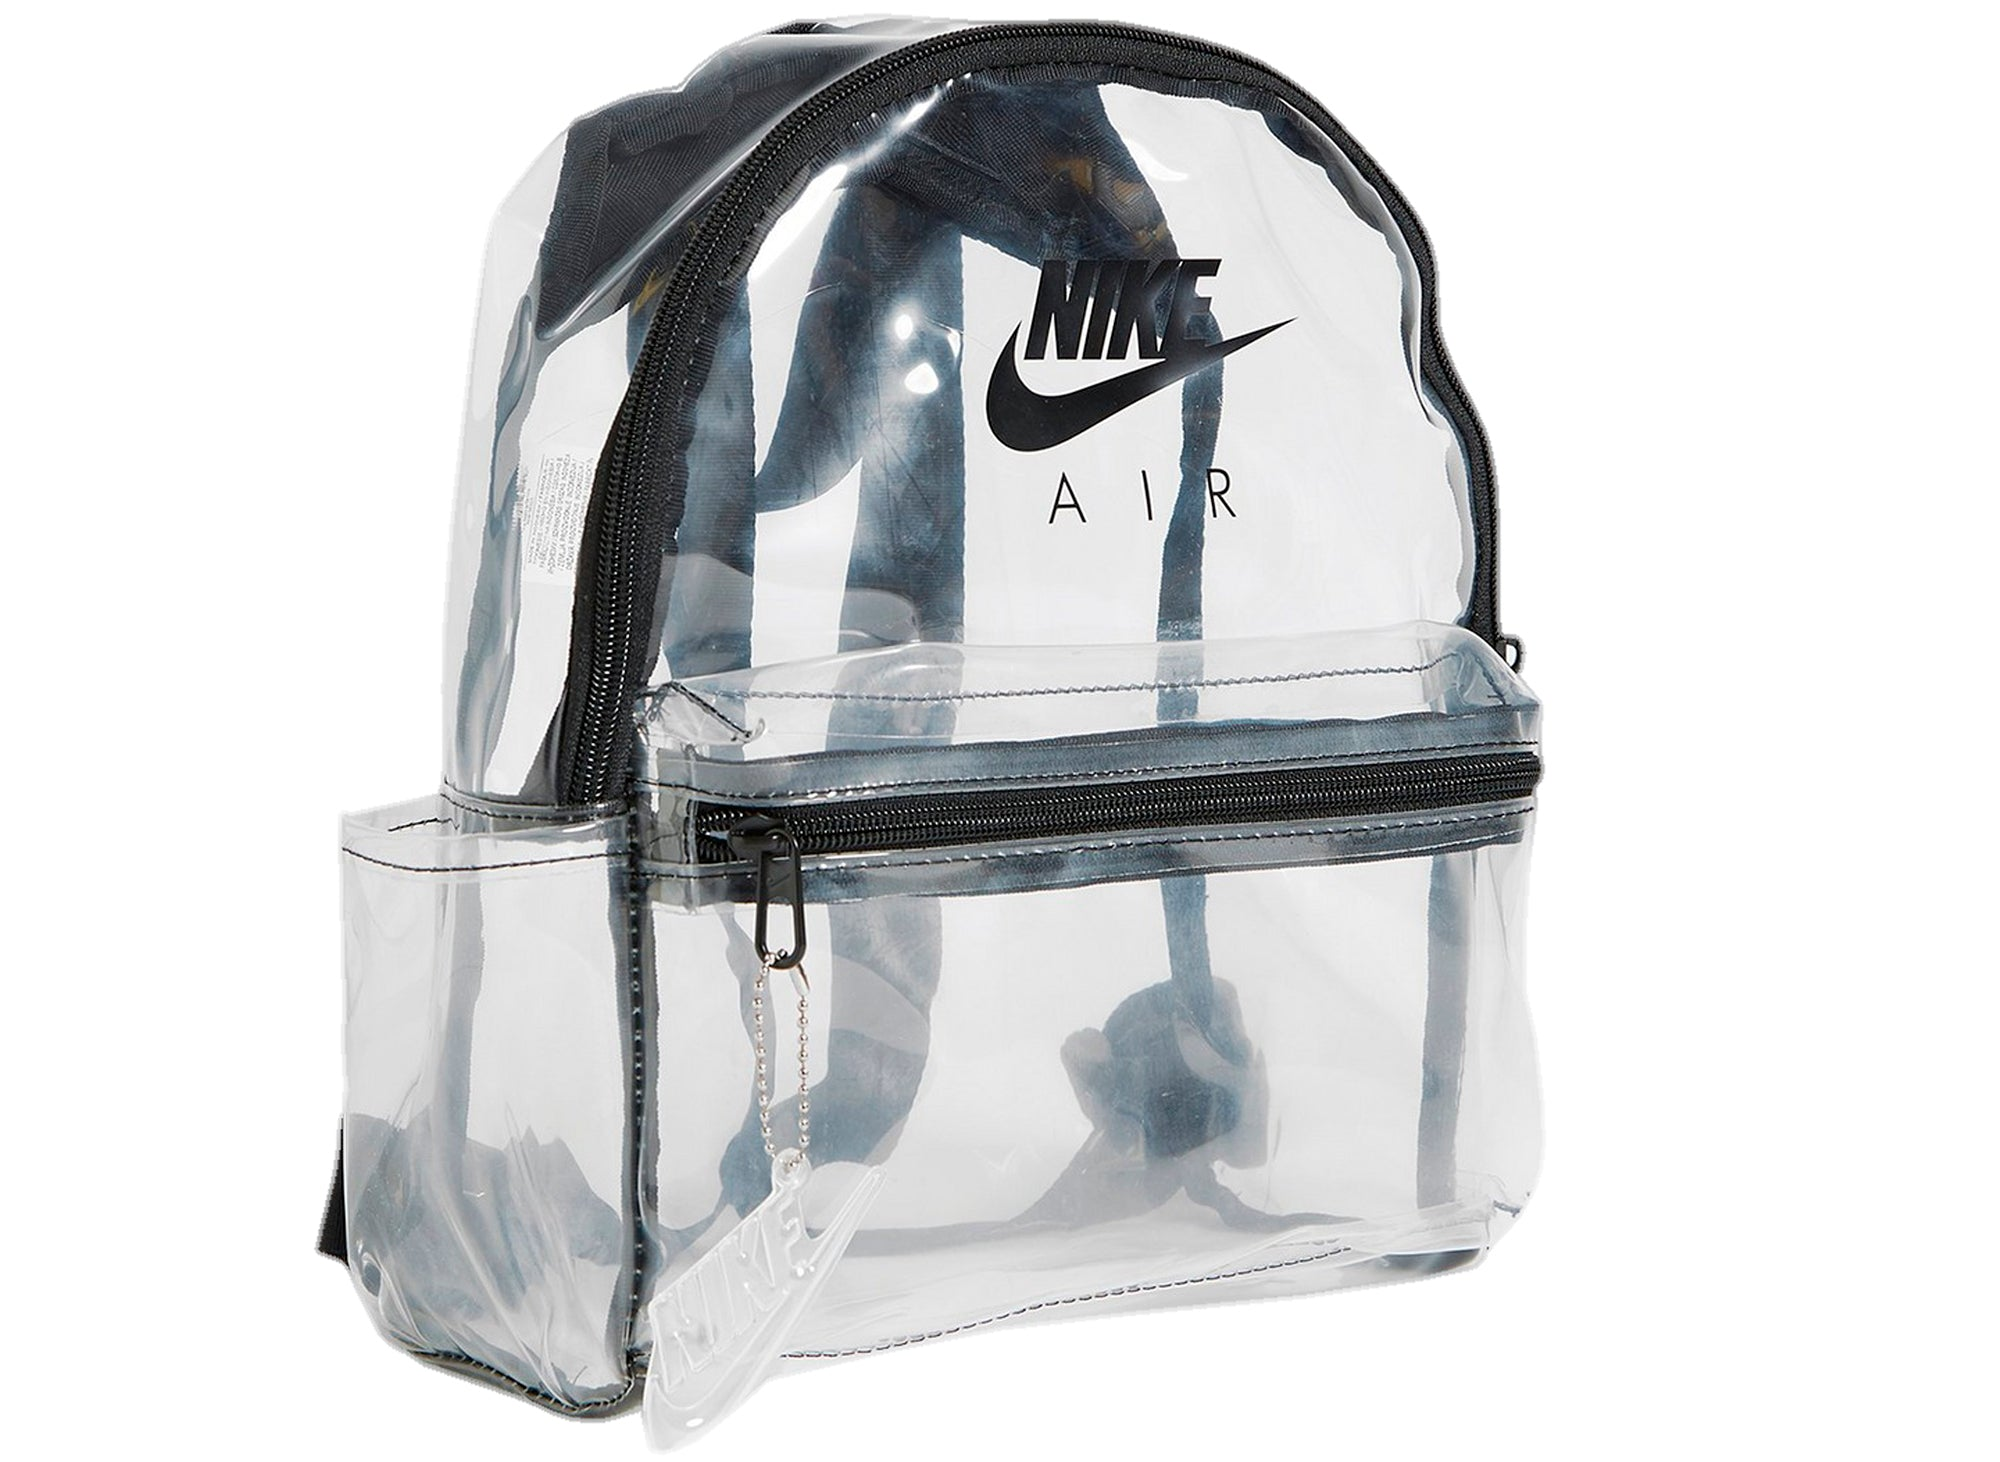 Nike Just Do It Mini Backpack 'Translucent'